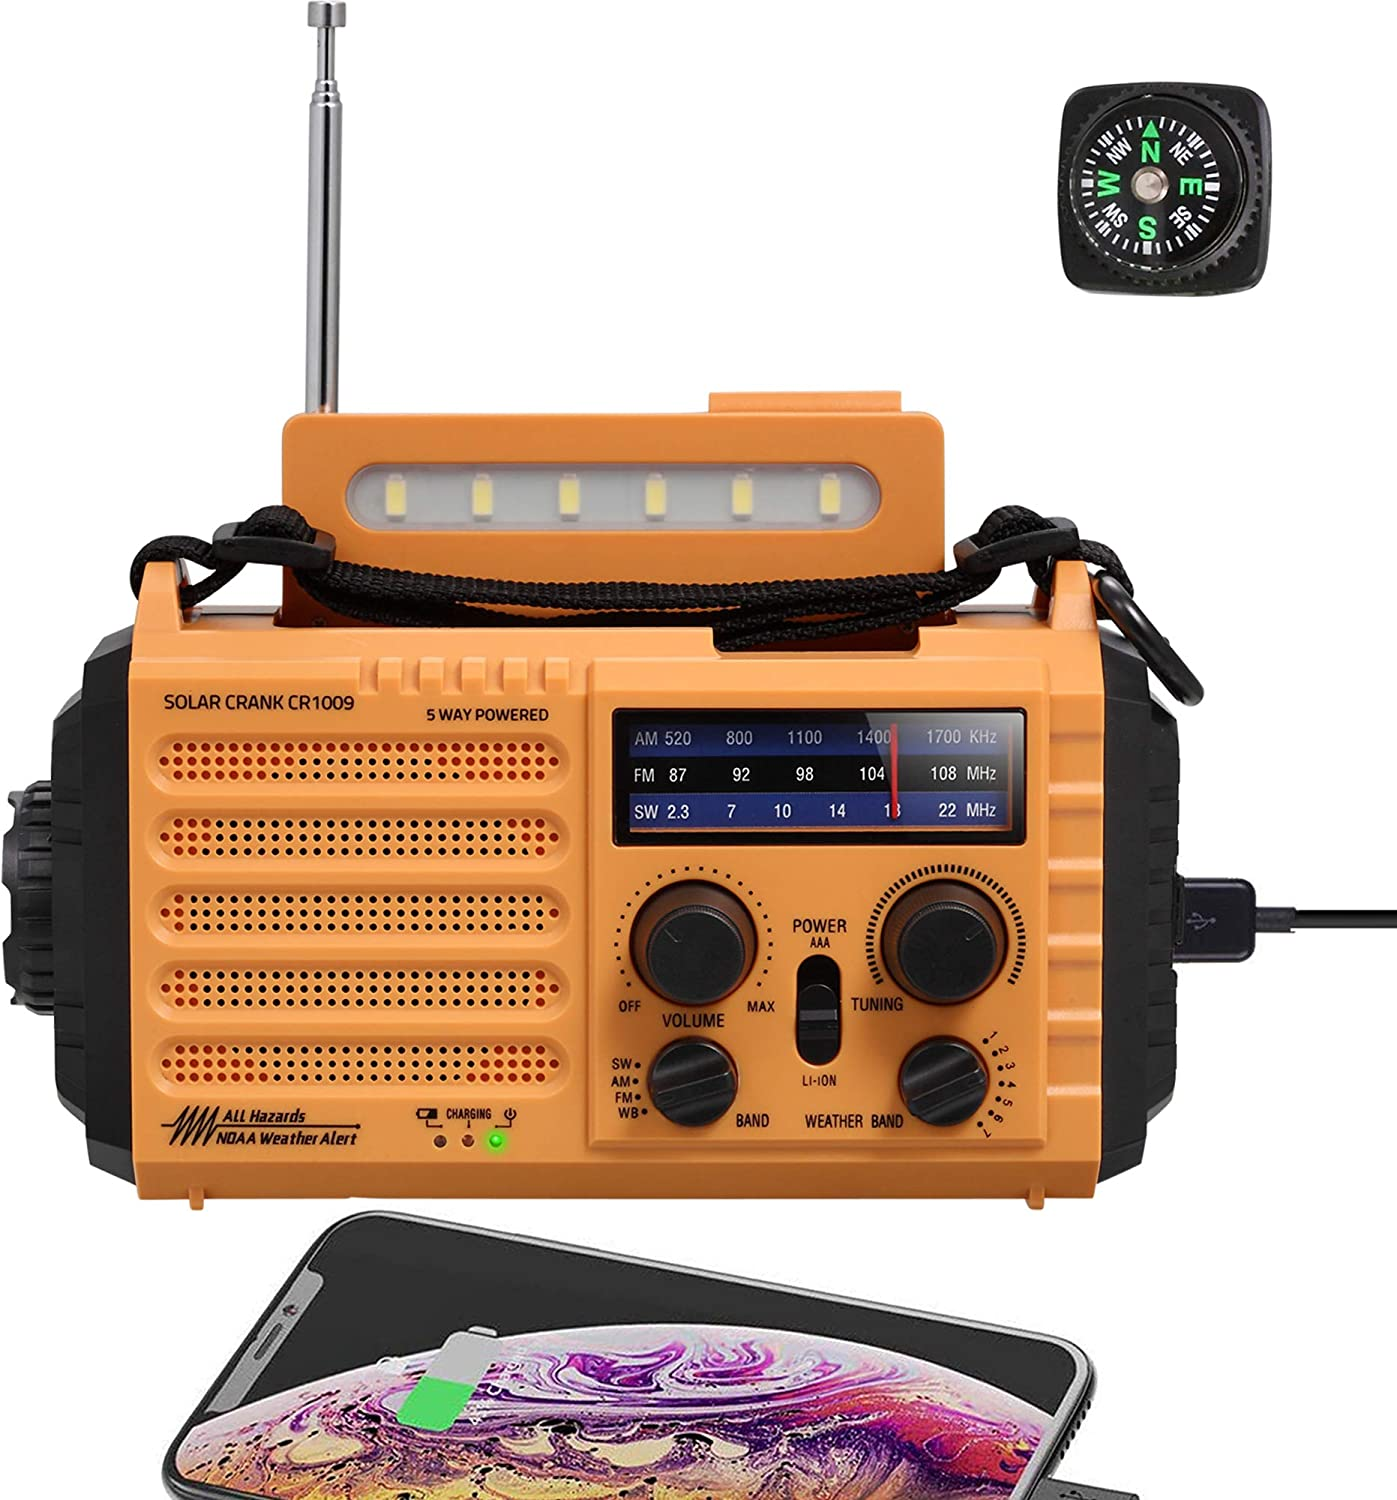 Emergency Solar Hand Crank AM/FM/SW/NOAA Weather Alert Battery Operated Portable Radio with Compass, 5W LED Flashlight, Reading Lamp, SOS Alarm, 2000mAh Power Bank for Cellphone Charger Home Camping